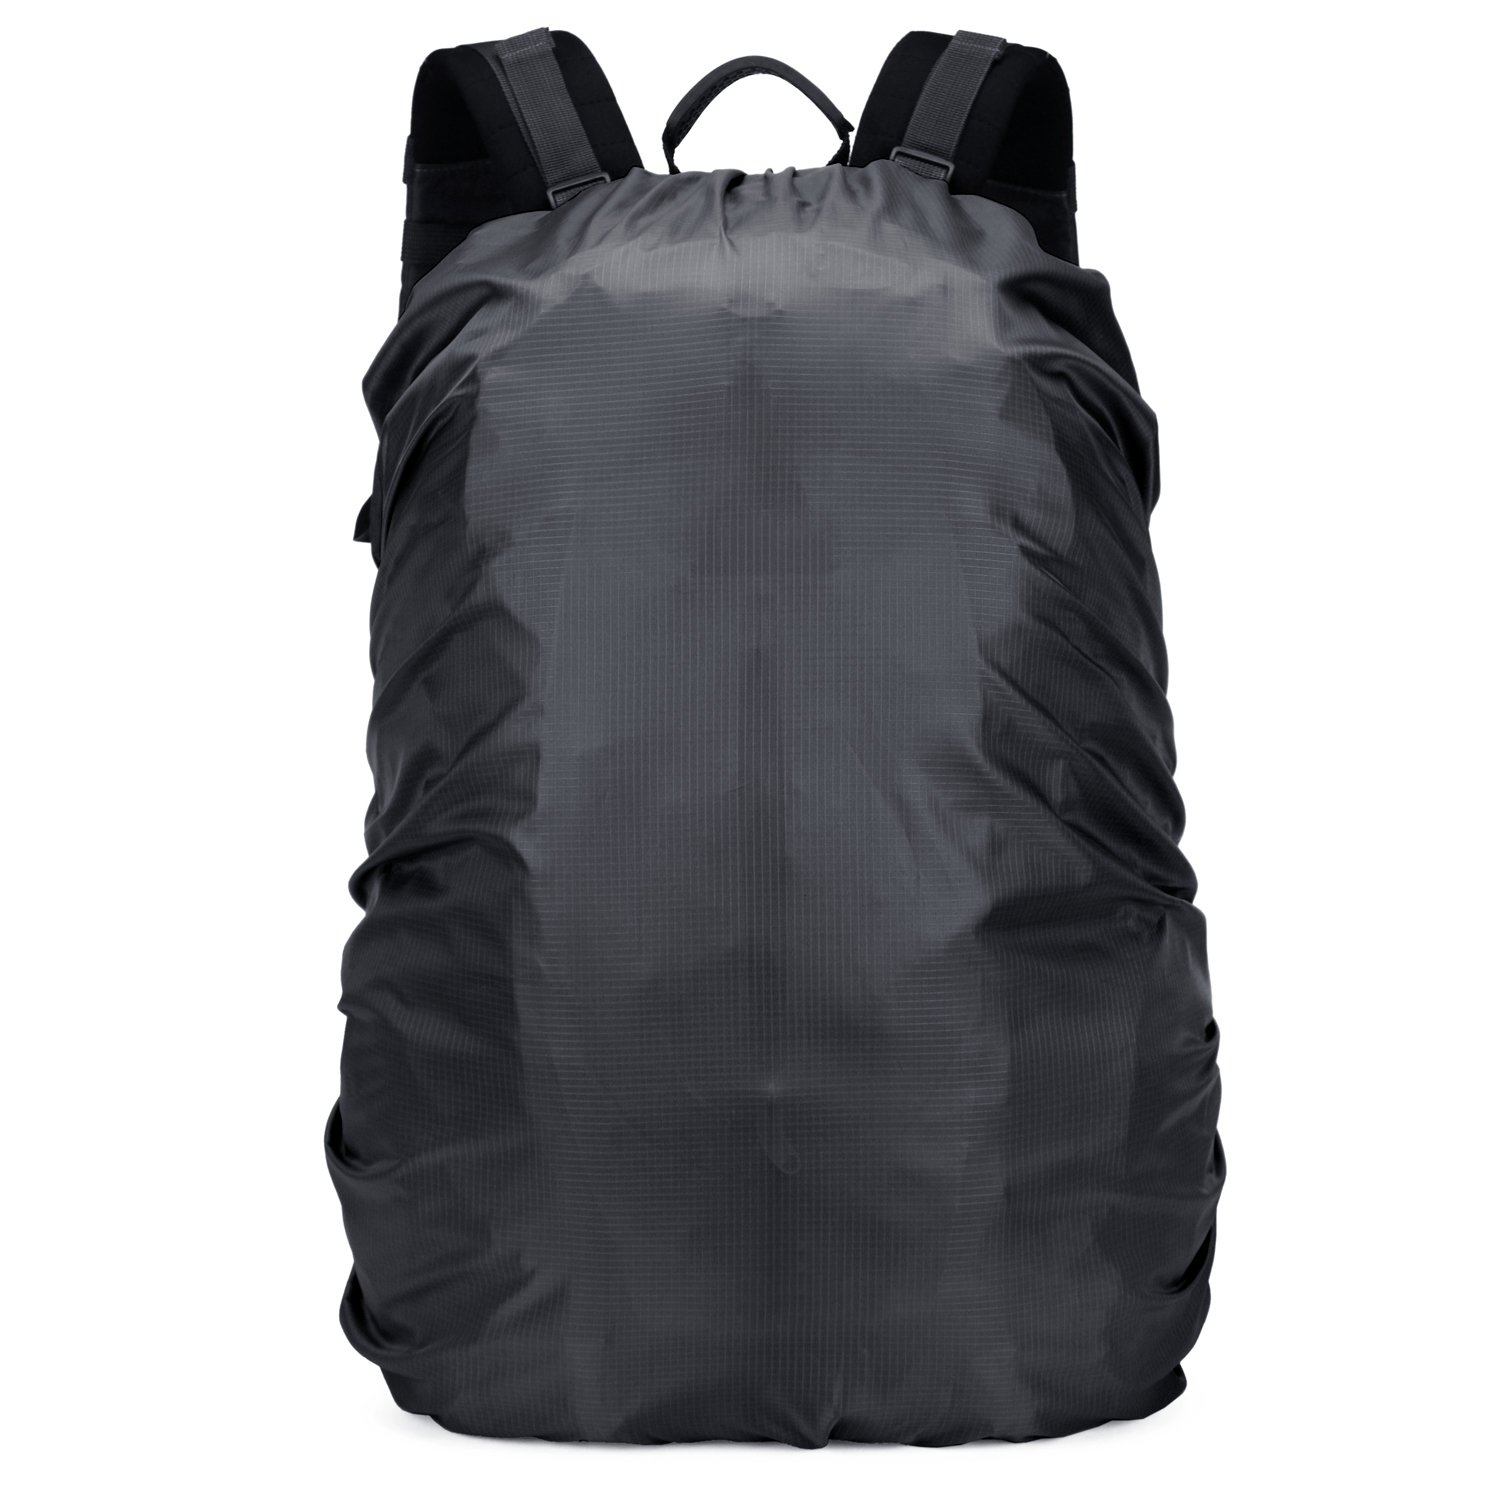 OMERIL Backpack Raincover Waterproof Rucksack Bag Rain Cover for School Hiking Camping Traveling/Cycling /Climbing/Riding /Outdoor Activities (Black, Size L: 55-60L)